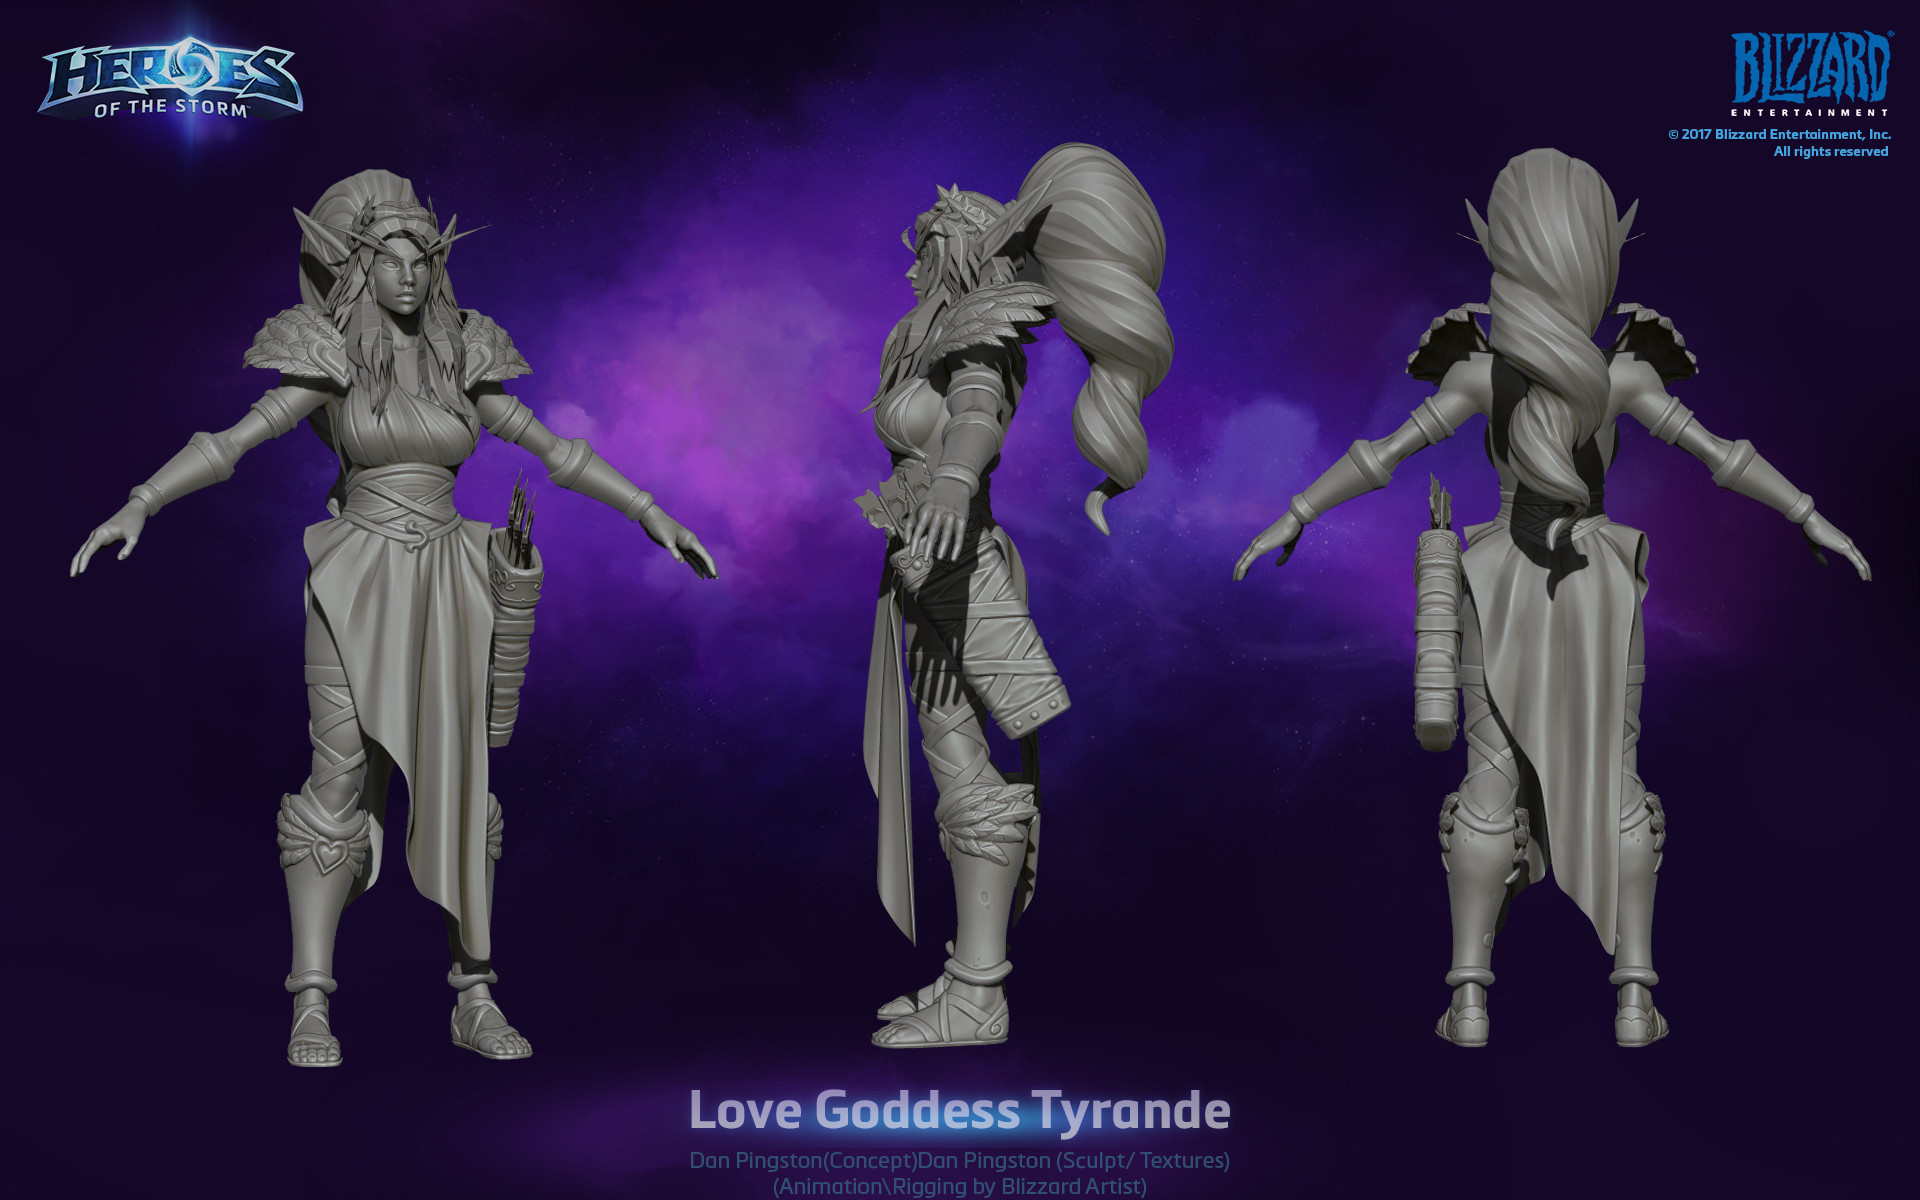 Dan pingston dan pingston lovegoddesss tyrande hots3